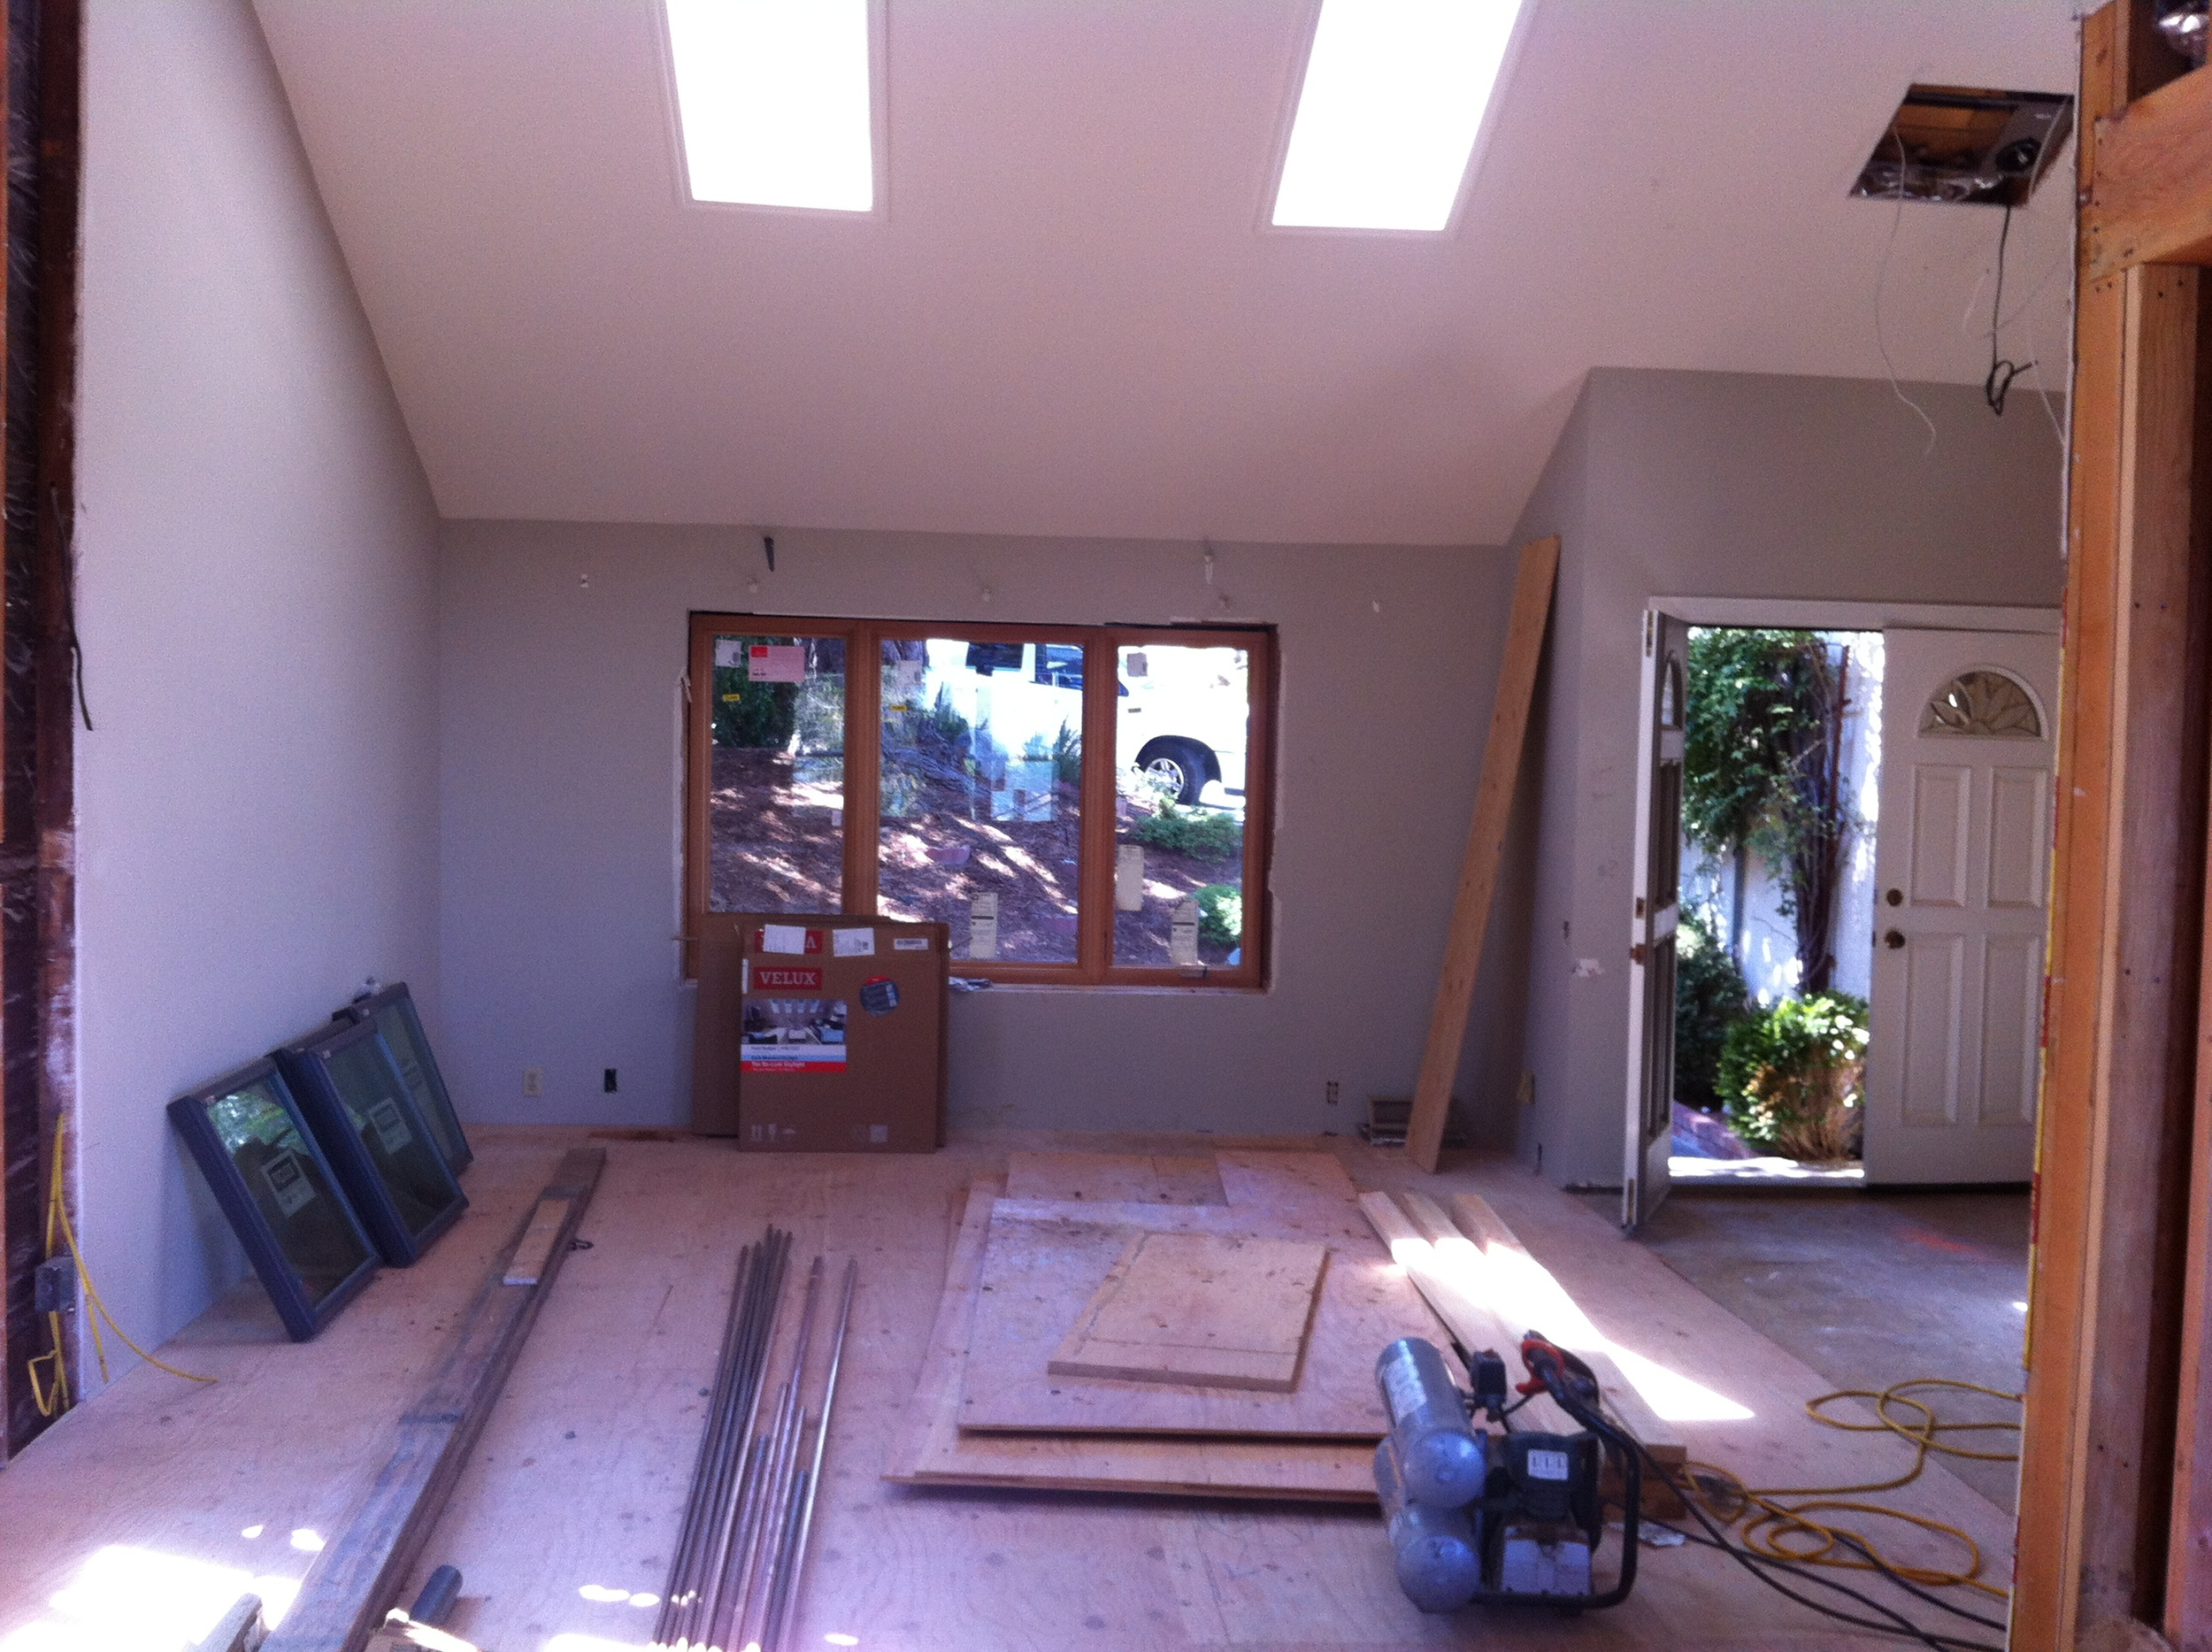 The Living Room with the sunken floor now filled in.